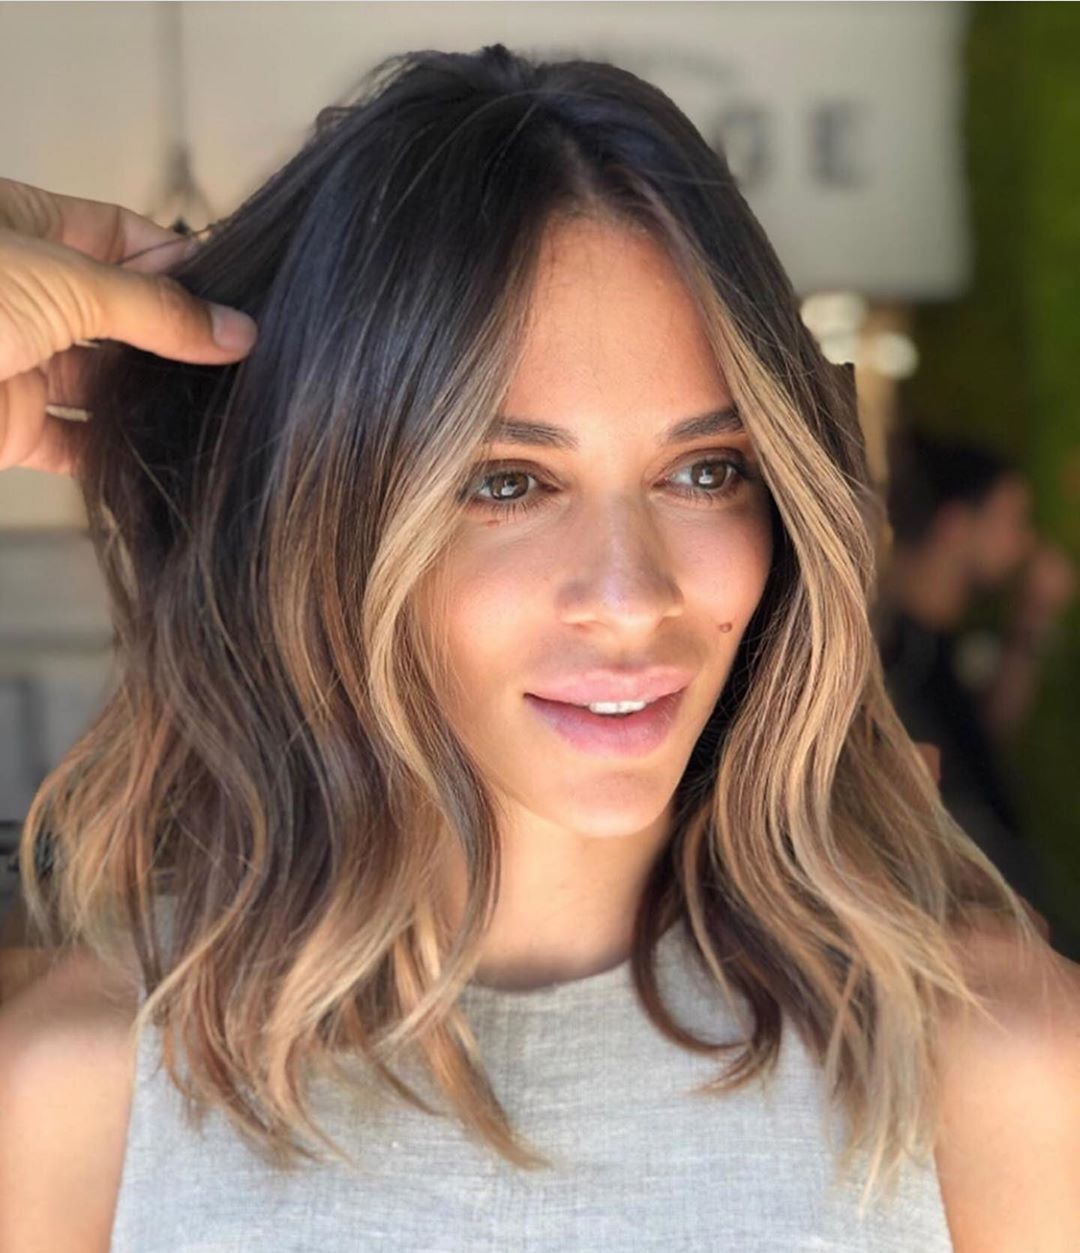 Enissablog On Instagram What S Your Favorite Long Or Short Hair Blo In 2020 Blonde Highlights On Dark Hair Blonde Highlights On Dark Hair Short Short Hair Balayage